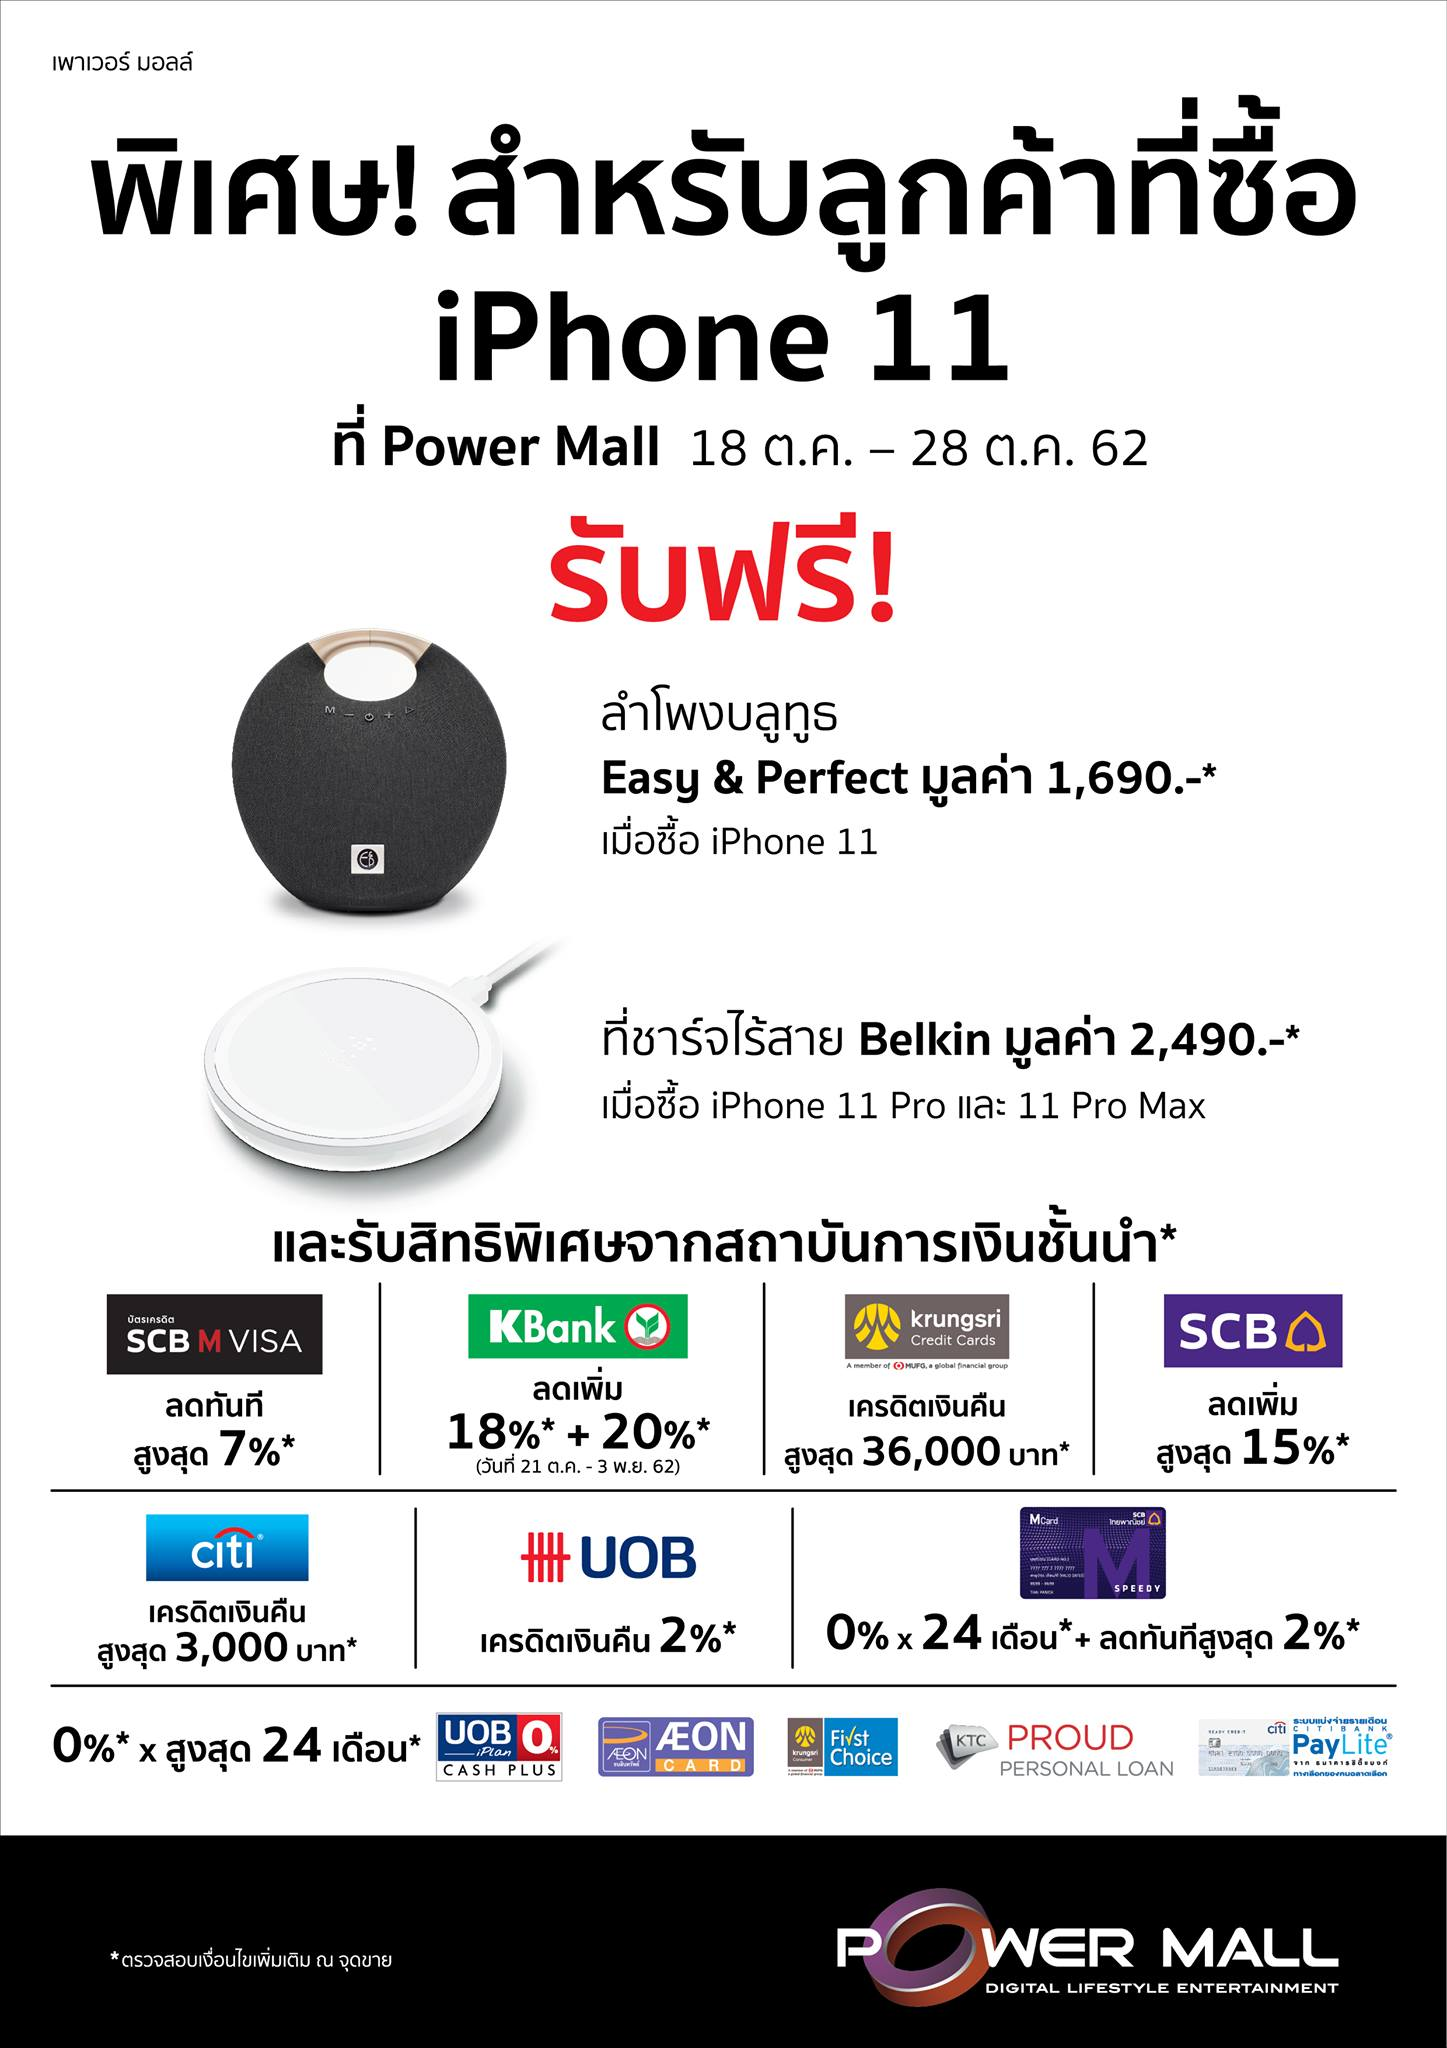 iphone_11_powermall_promo